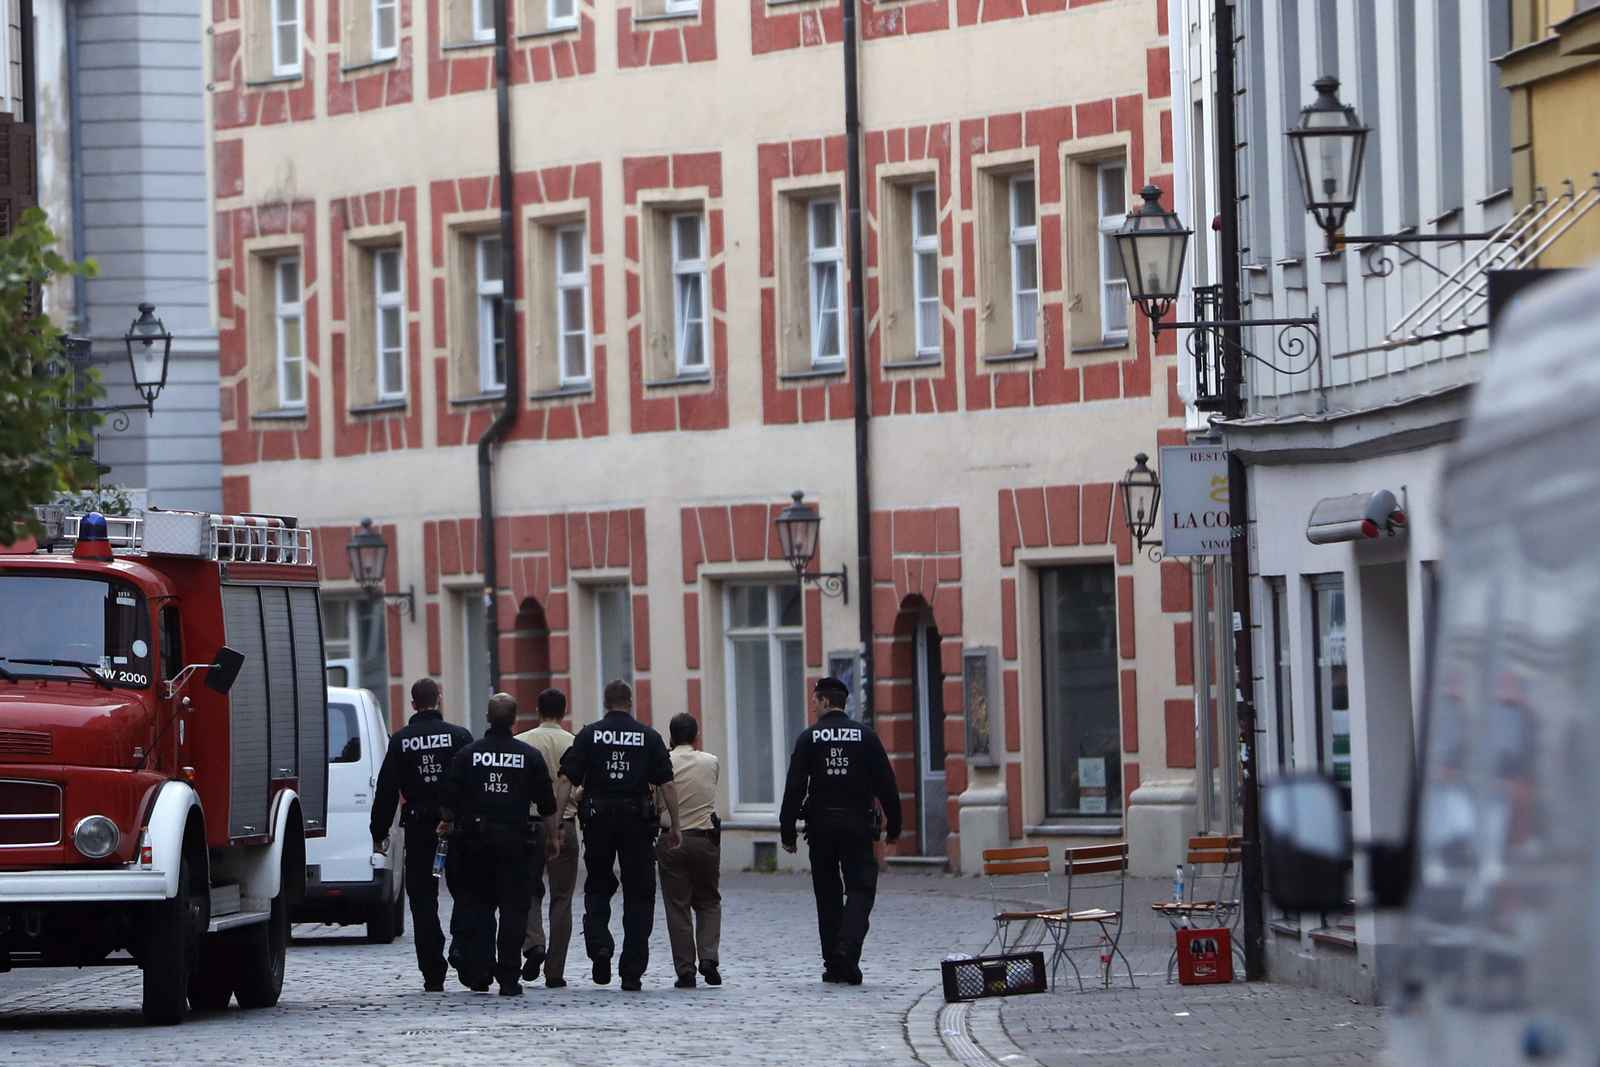 Police officers patrol through the old part of Ansbach, Germany, Monday, July 25, 2016. Bavaria's top security official says a man who blew himself up after being turned away from an open-air music festival in the southern German city was a 27-year-old Syrian who had been denied asylum. (AP Photo/Matthias Schrader)